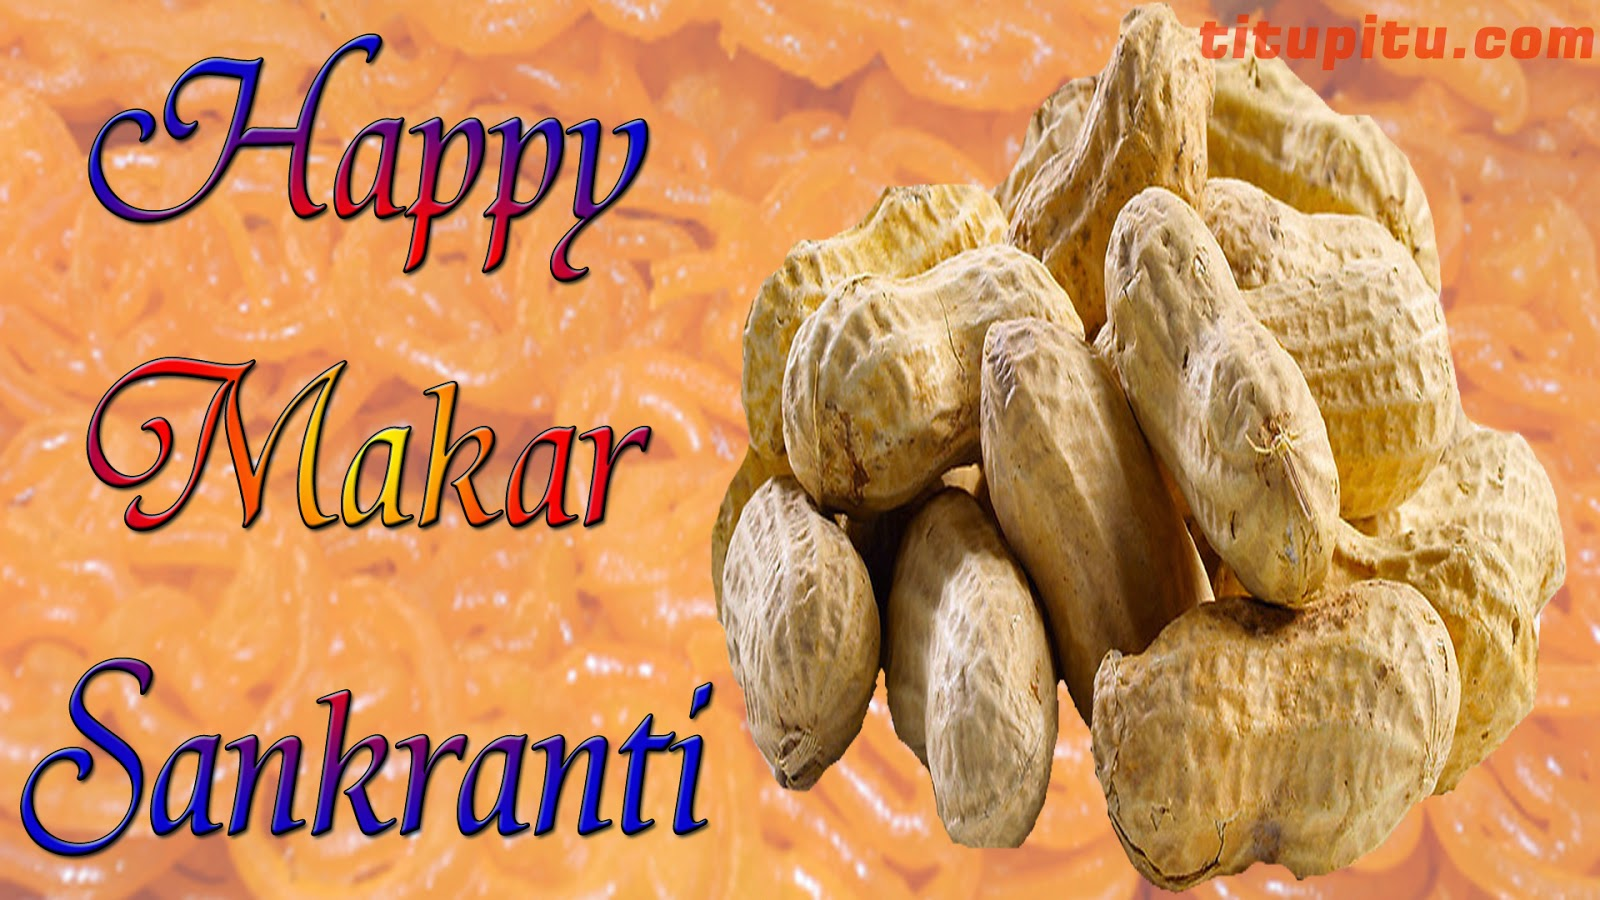 Makar sankranti greetings wallpapers haryanvi makhol jokes in makar sankranti images m4hsunfo